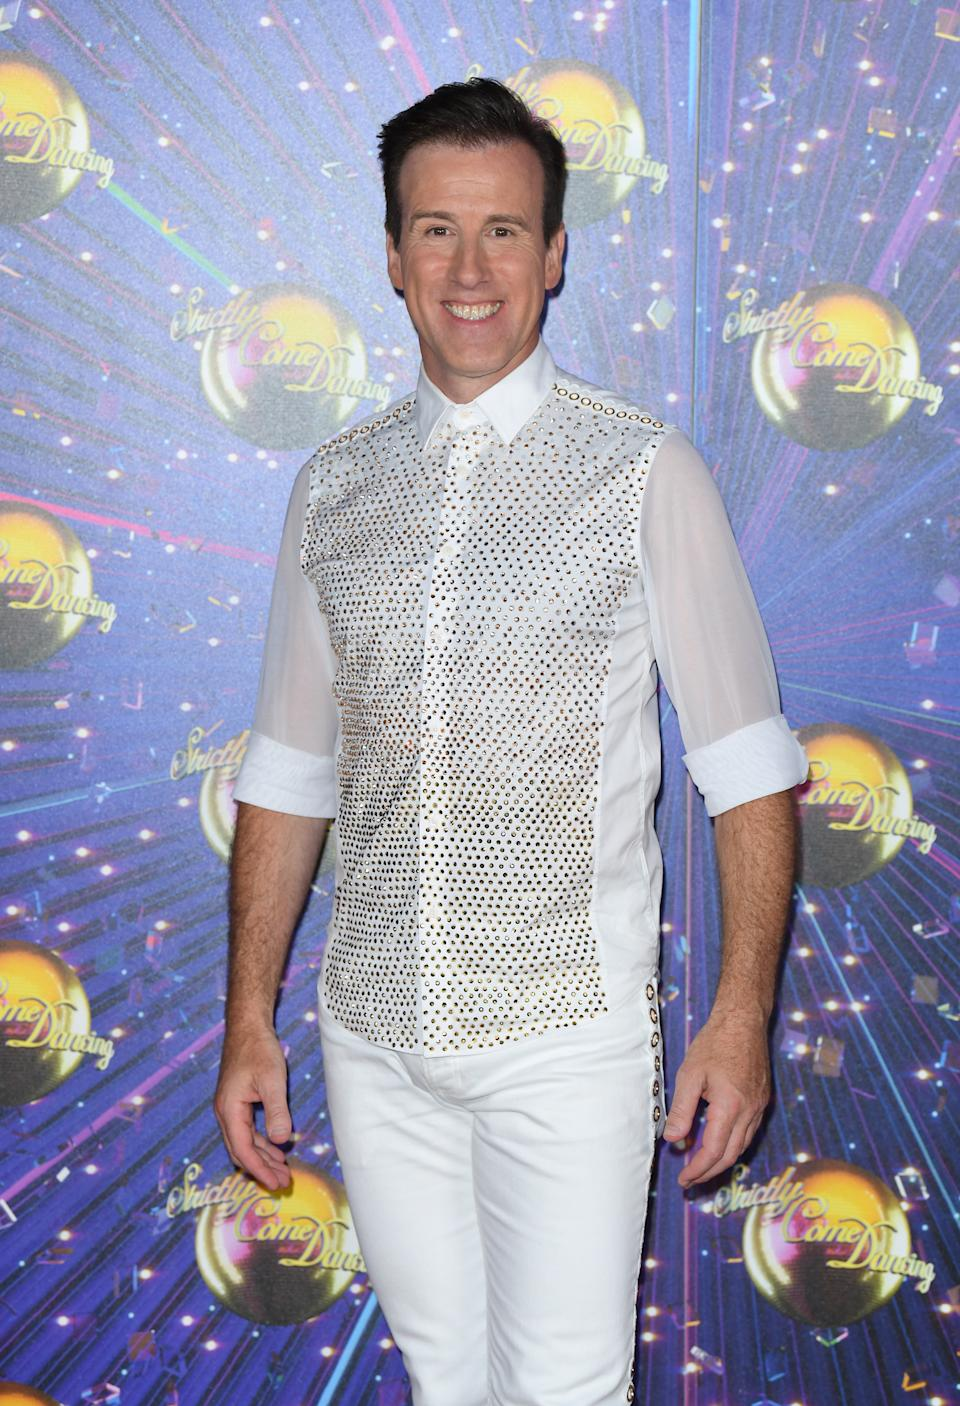 Anton Du Beke did have a temporary stint as a judge in 2020. (Photo by Karwai Tang/WireImage)